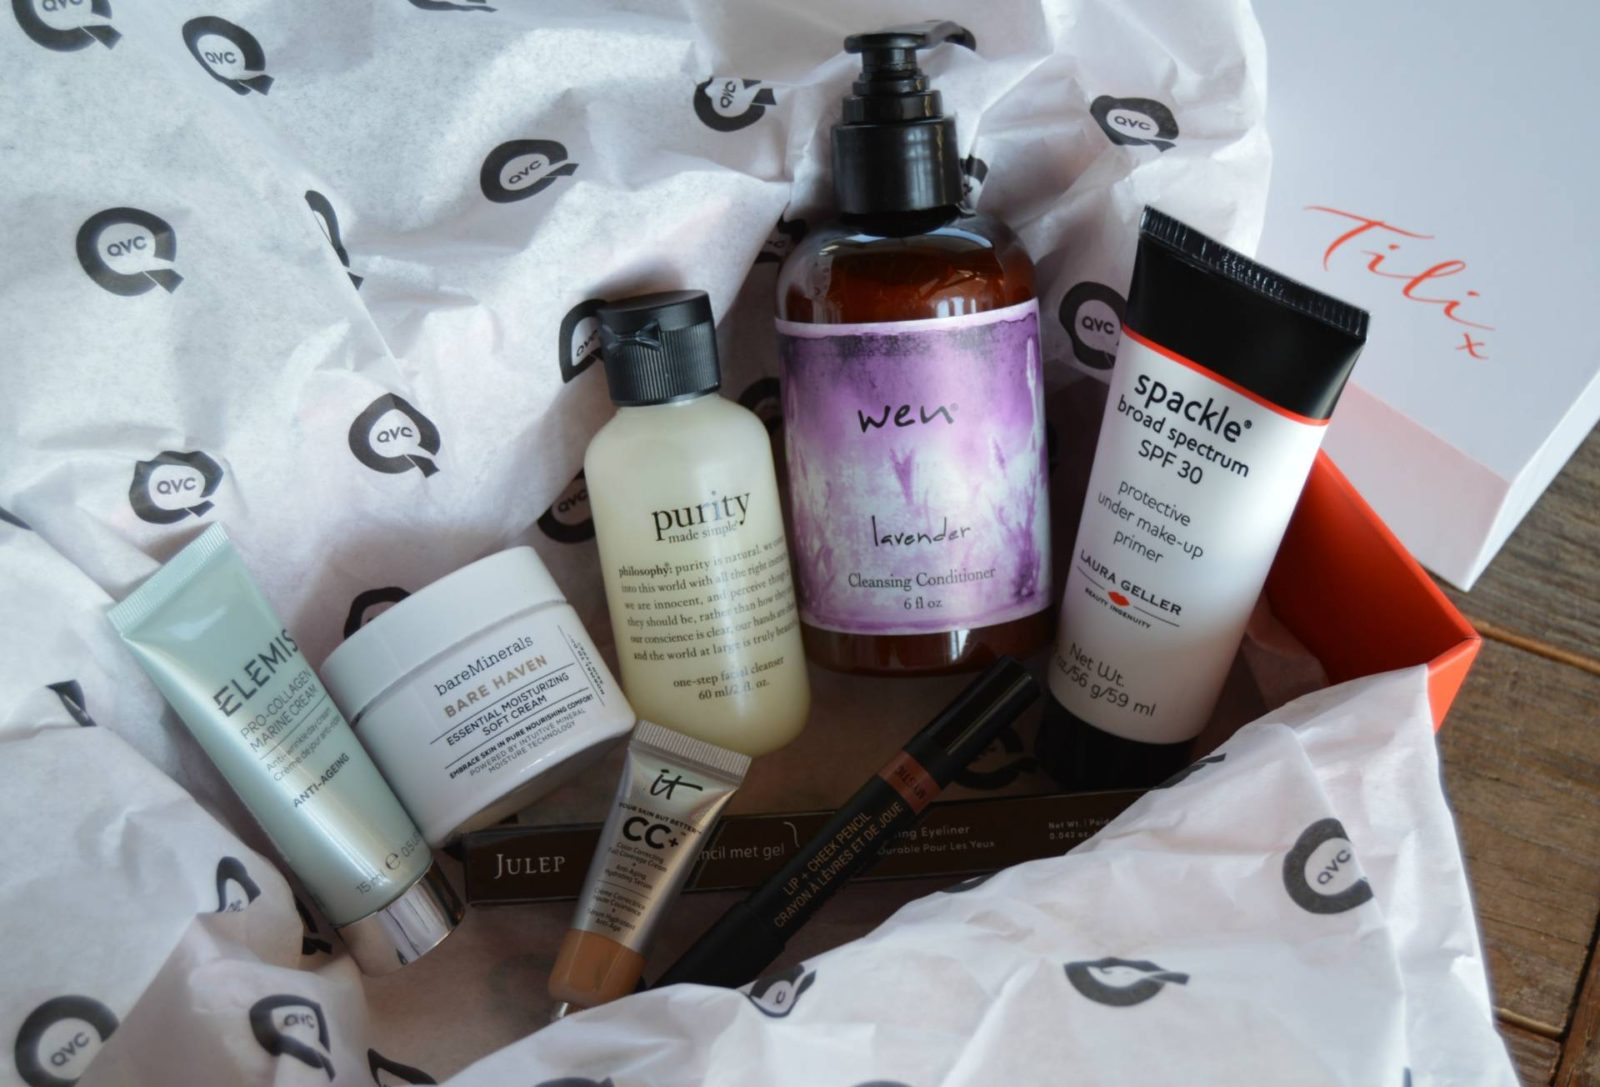 <b>TILI:</b> Try It, Love It – The (non-subscription) Beauty Box QVC Just Launched